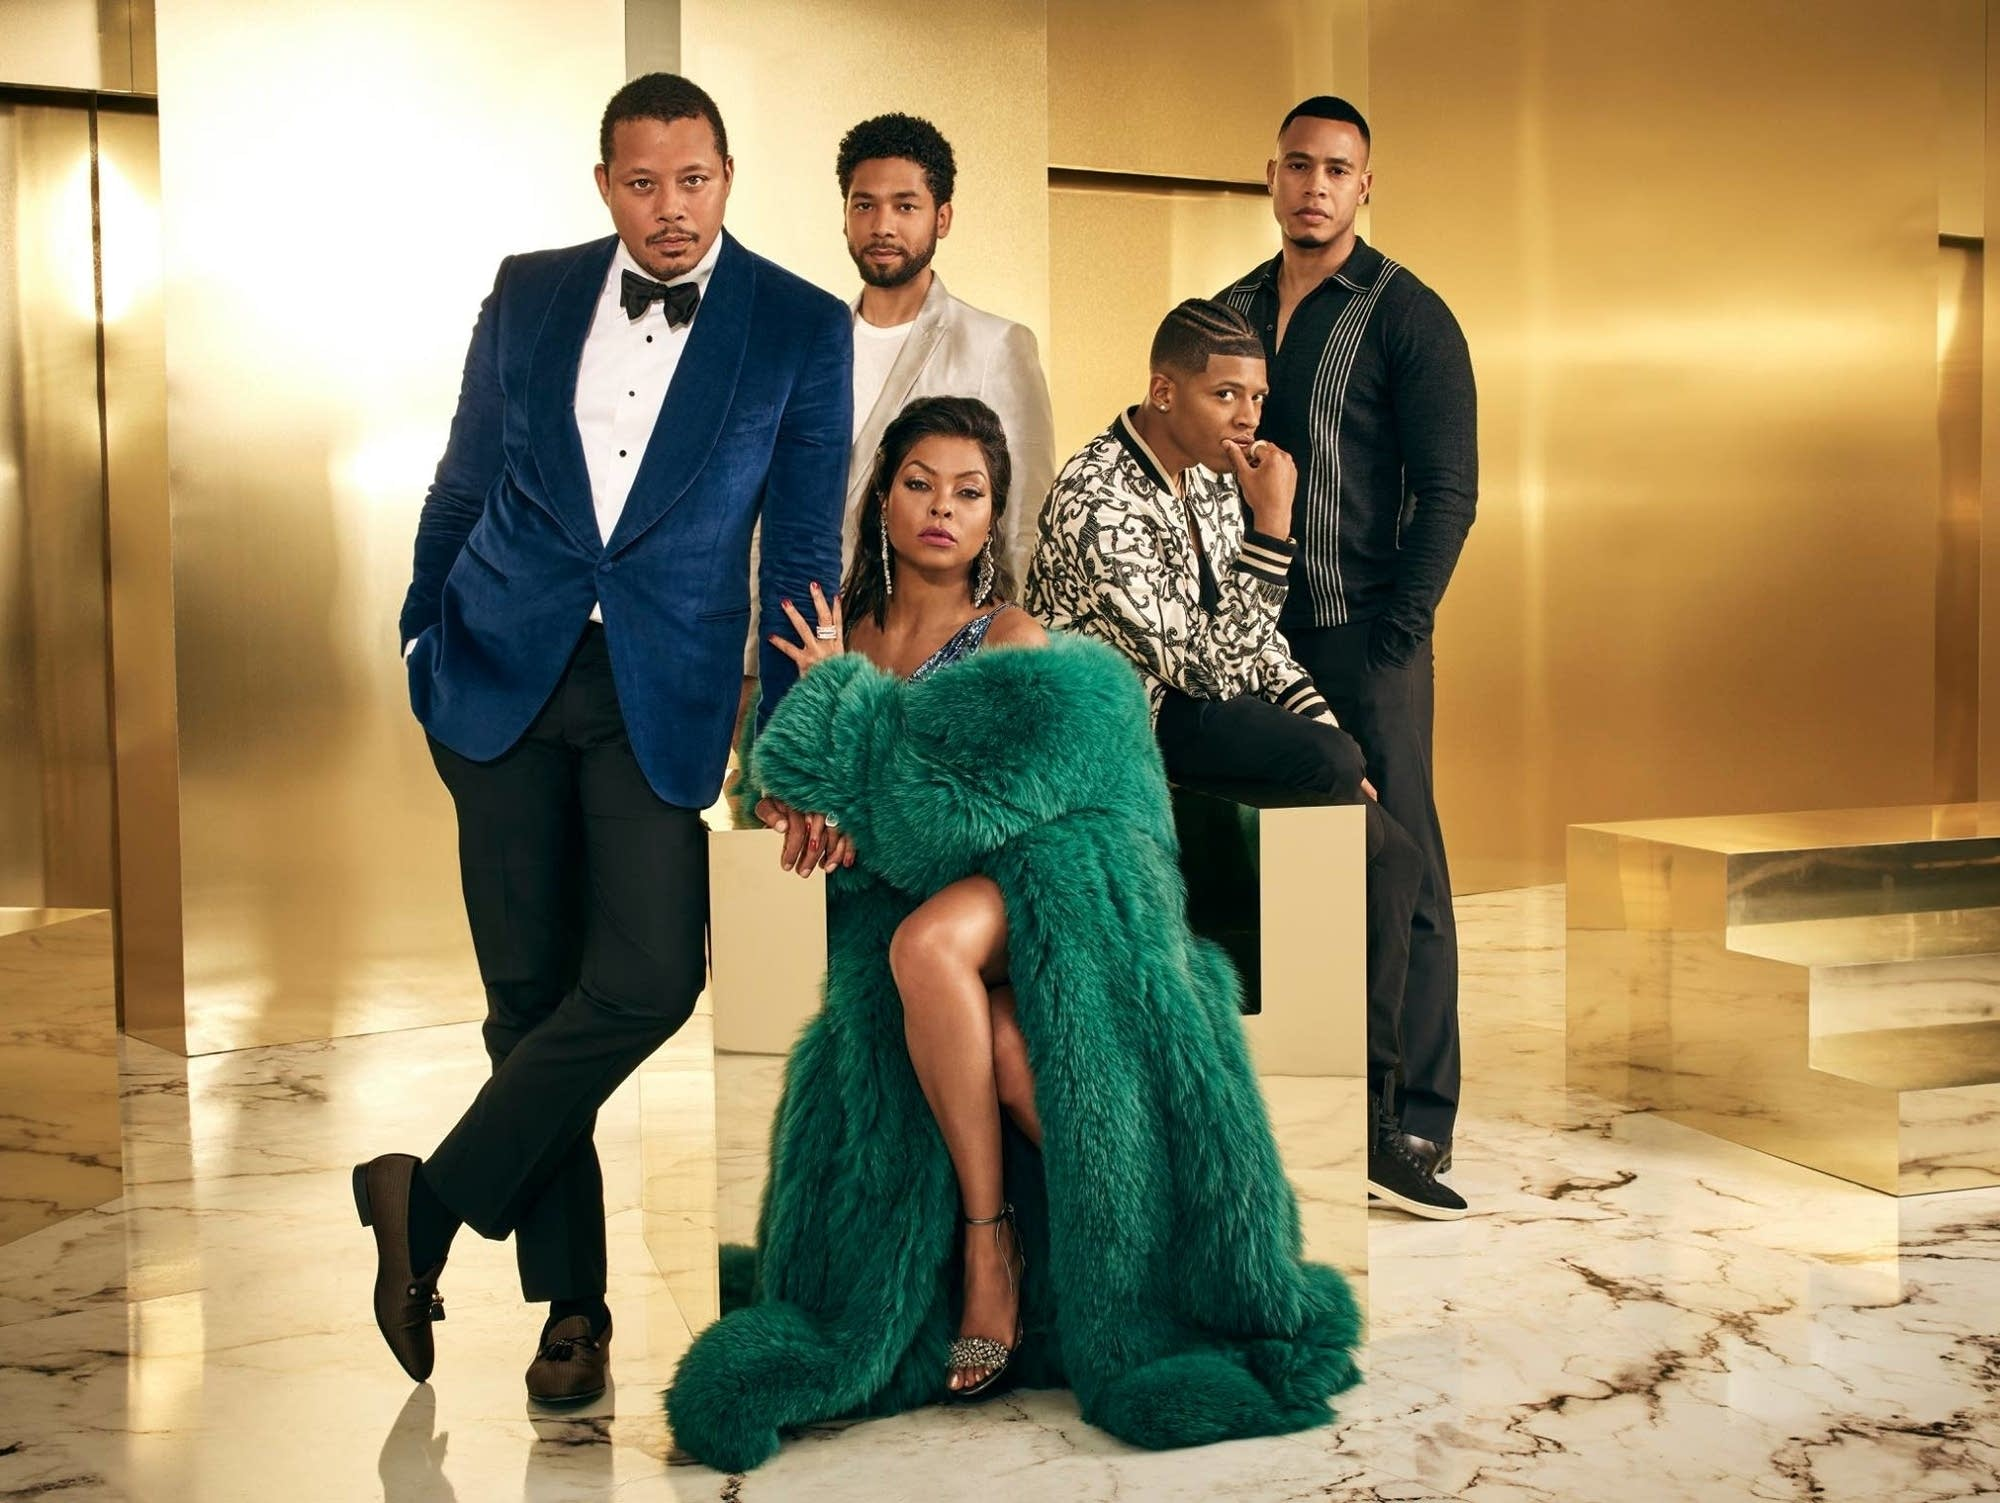 The cast of 'Empire' in a promotional image for season four